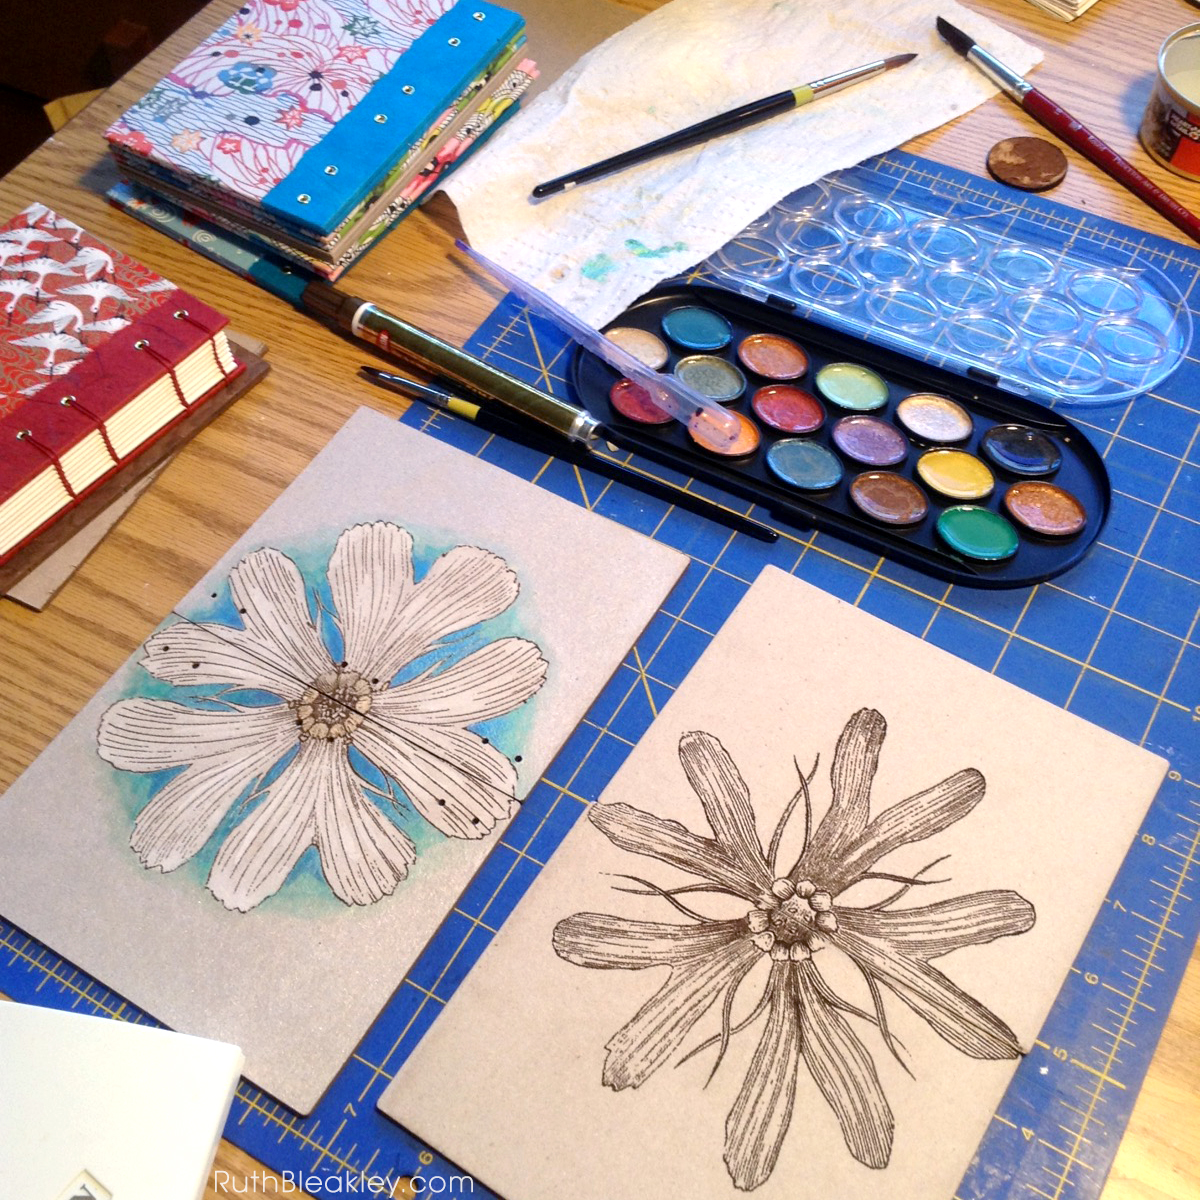 hand painted daisy journal from book artist Ruth Bleakley - metallic watercolor paint